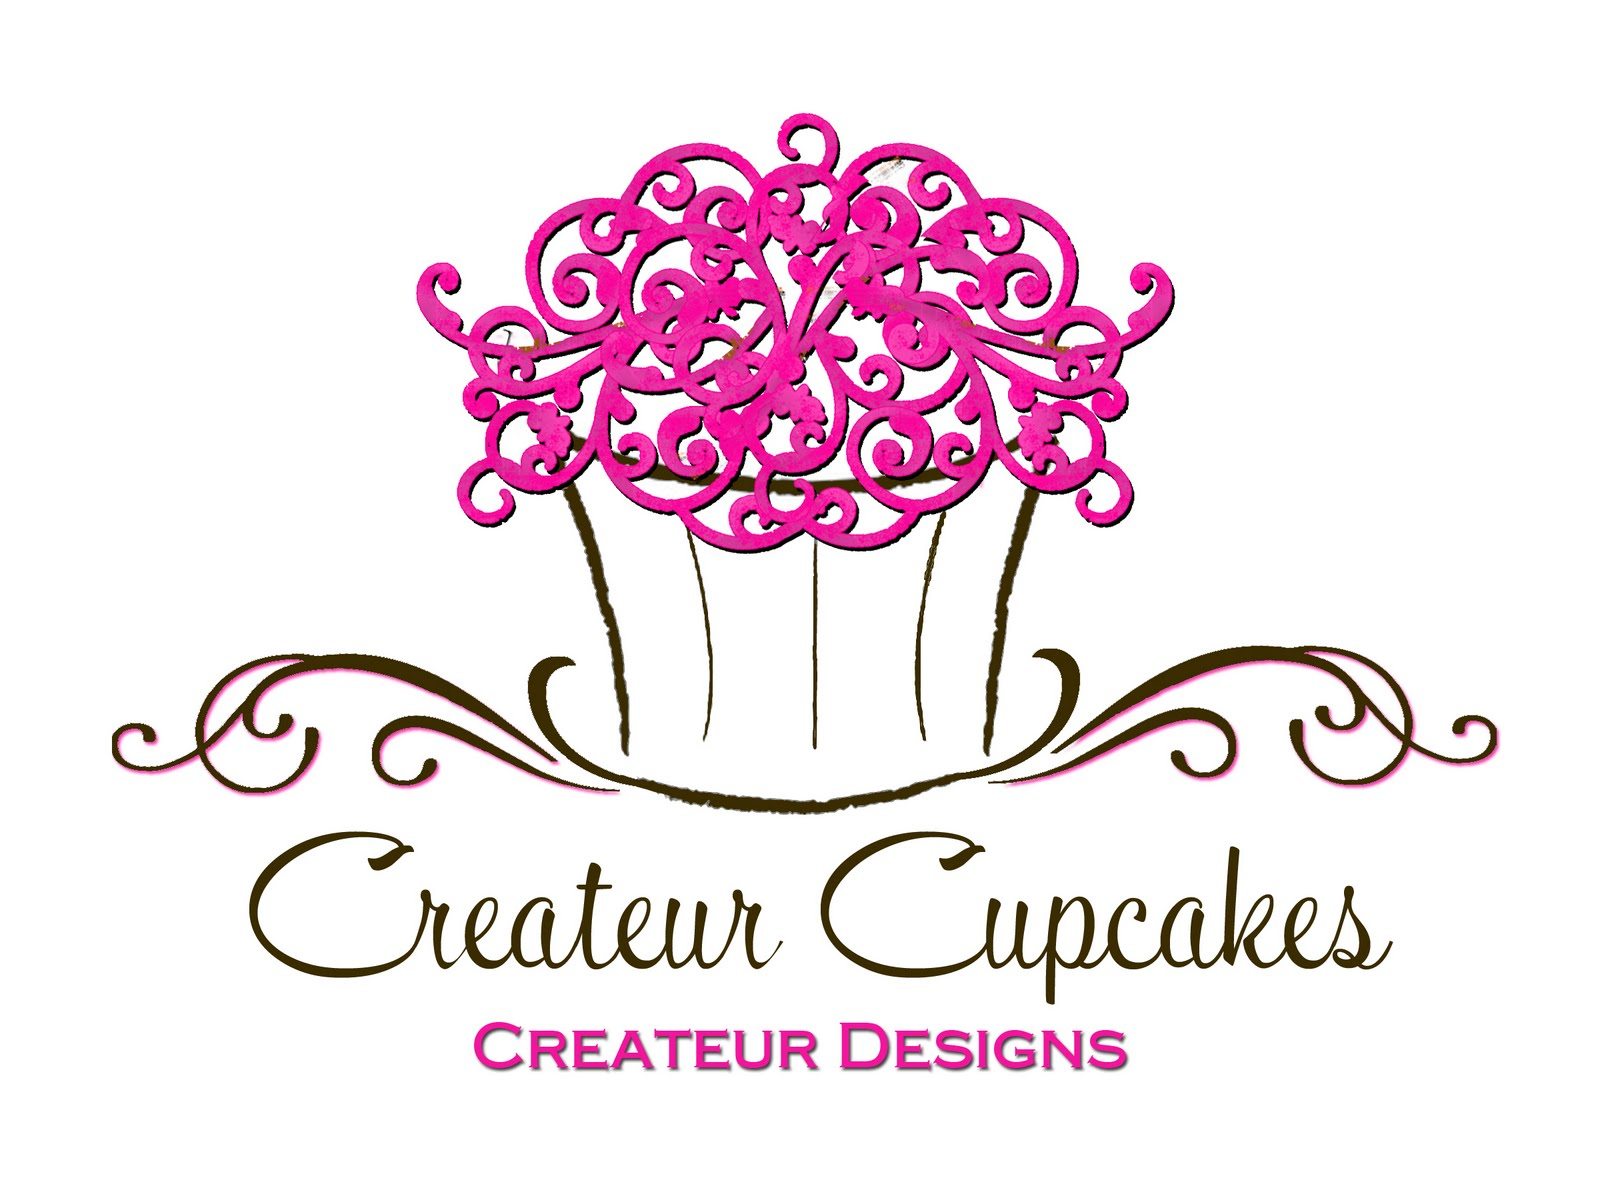 Createur designs createur cupcakes i was inspired by a cupcake business card i saw on vistaprint but added my own little flares fonts etc it was so fun and i absolutely love the new logo magicingreecefo Images